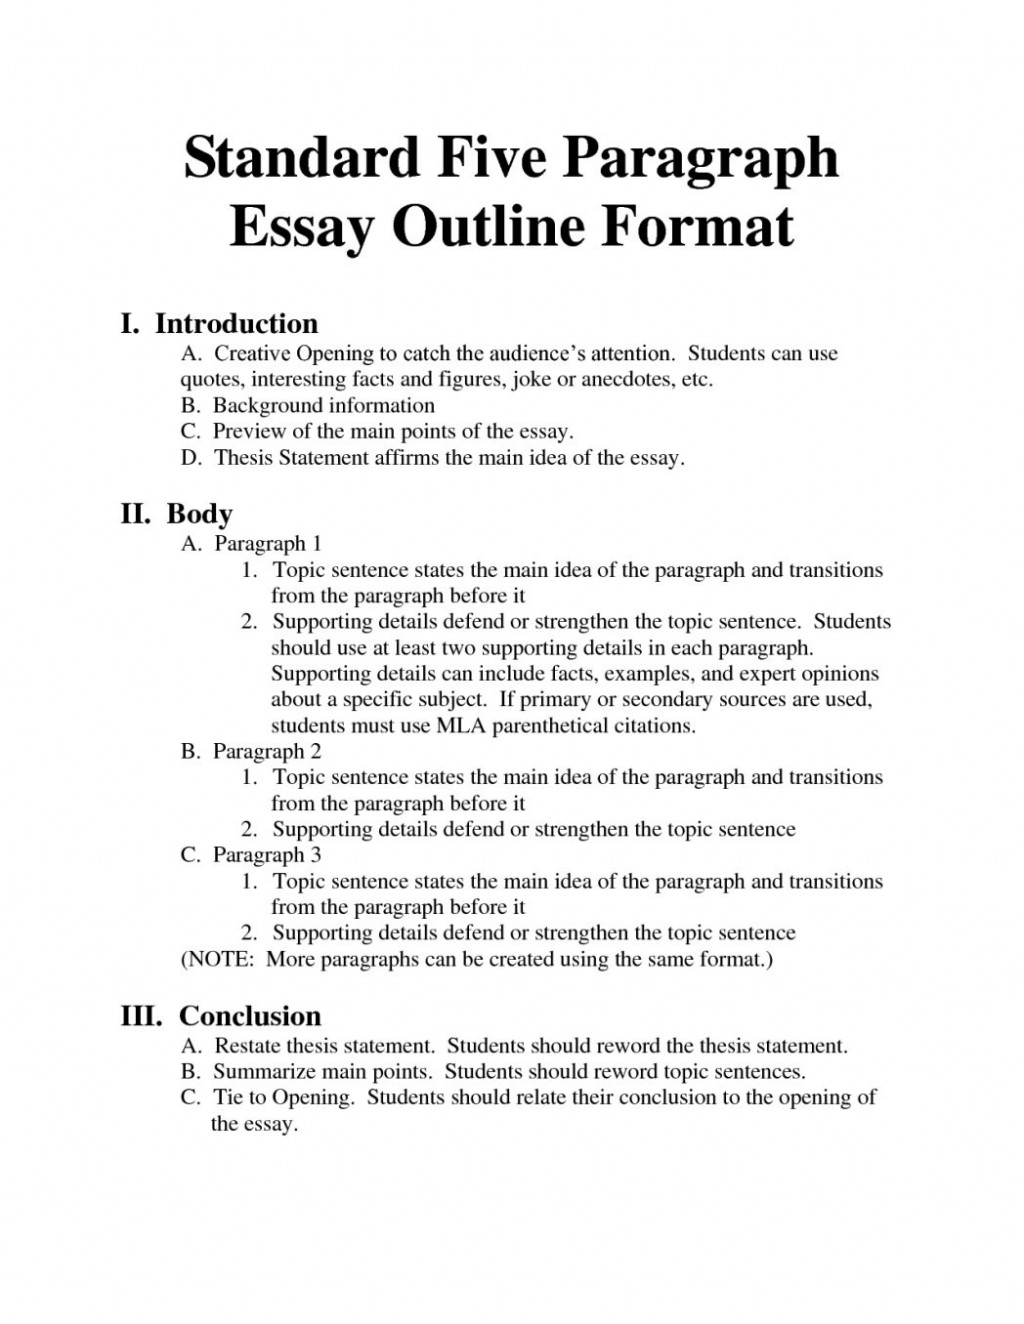 008 College Level Essay Outline Writings And Essaysow To Write Standard Format Bing Imagesomeschool Pintere Good Informative Introduction Argumentative Narrative Descriptive Persuasive 1048x1356 Impressive How A Steps Large